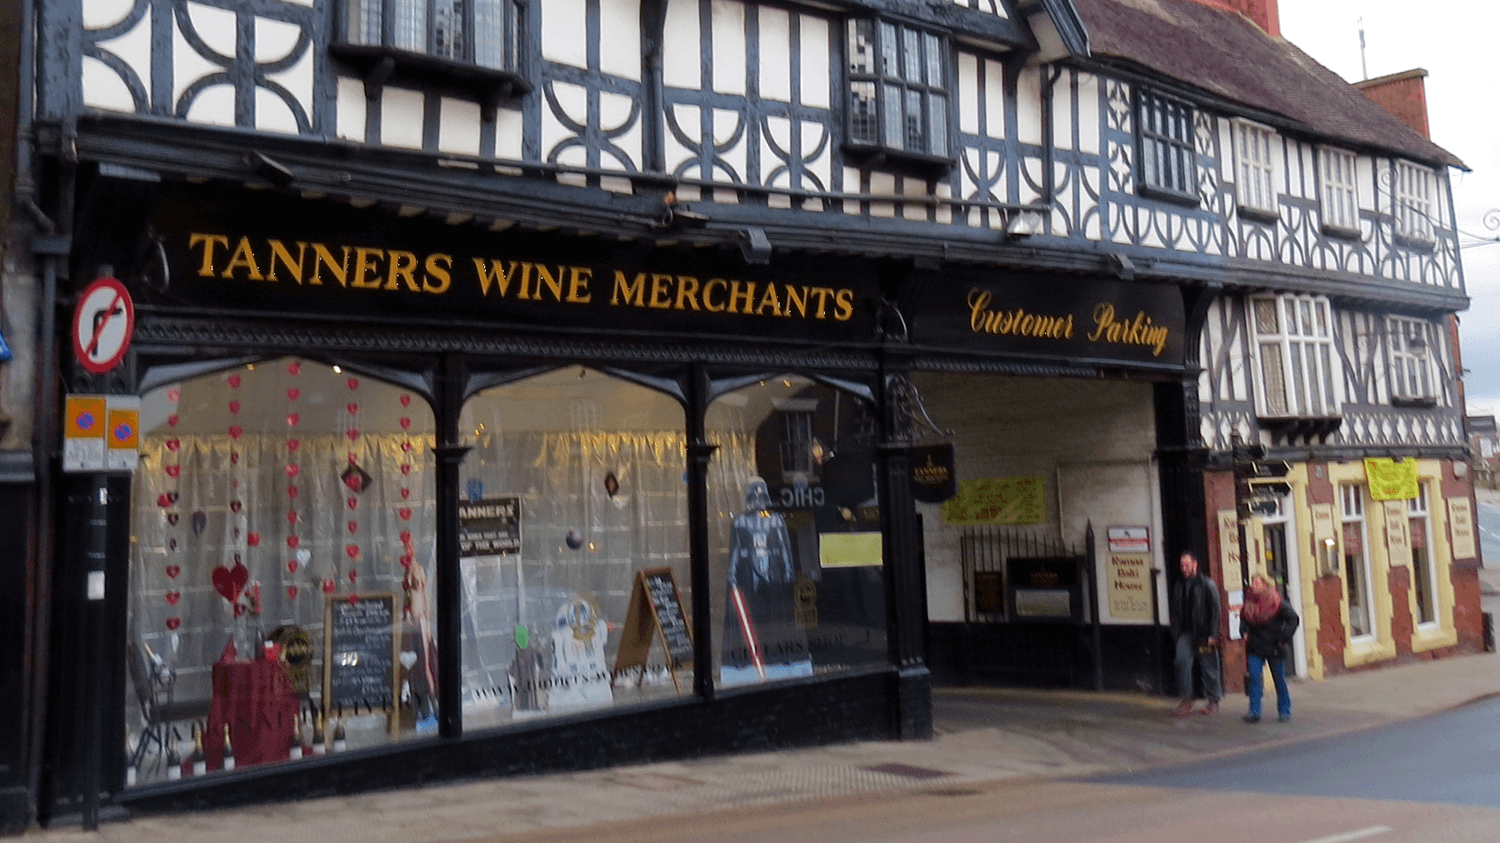 Commercial property in Shrewsbury